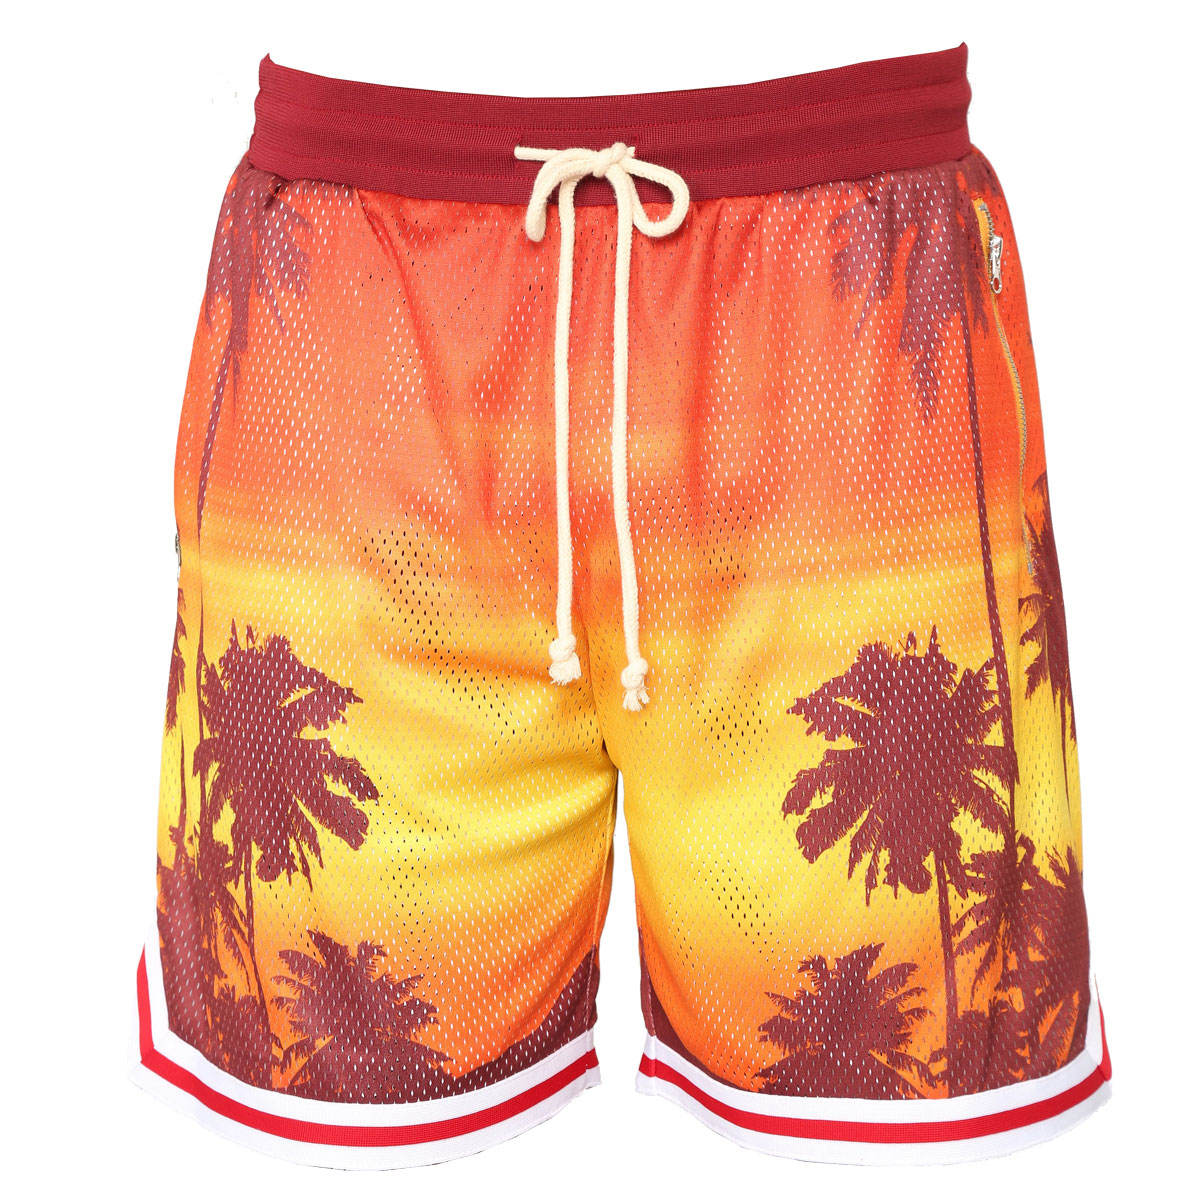 Dri Fit Mesh Stof Sublimatie Afdrukken Shorts/basketbal running shorts